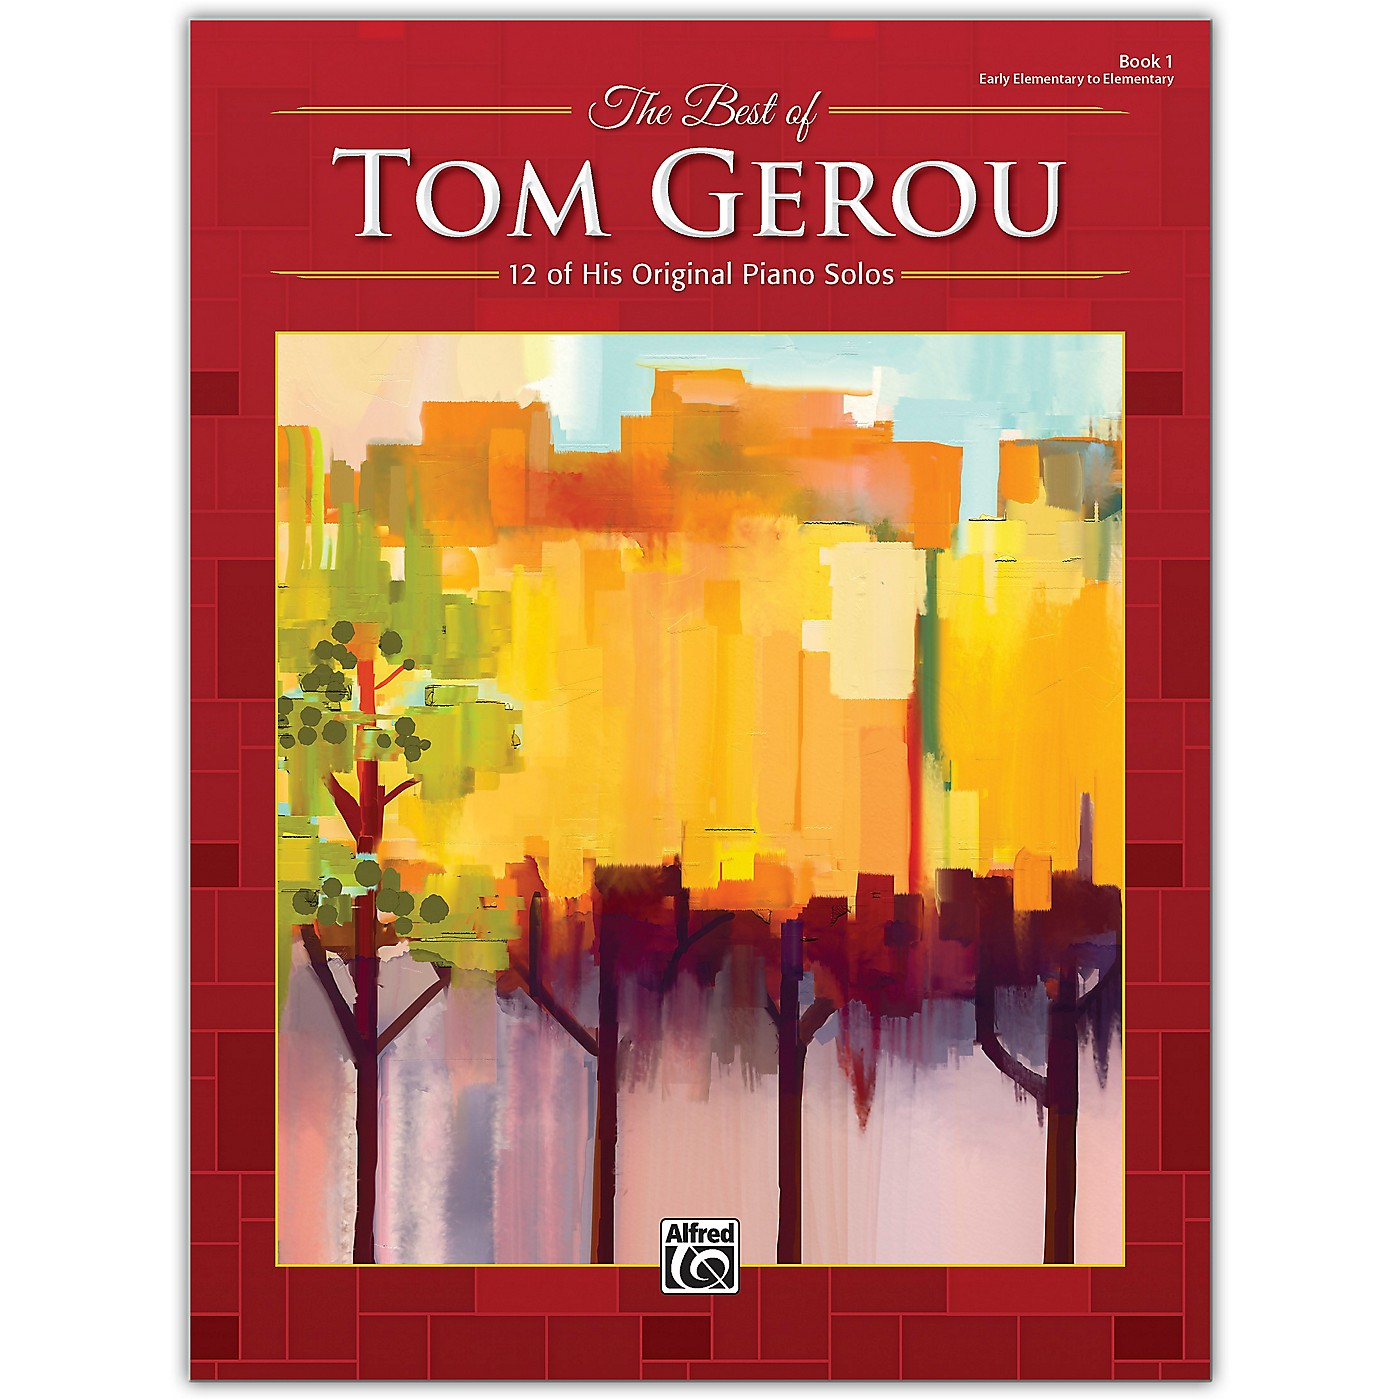 Alfred The Best of Tom Gerou, Book 1 Early Elementary / Elementary thumbnail